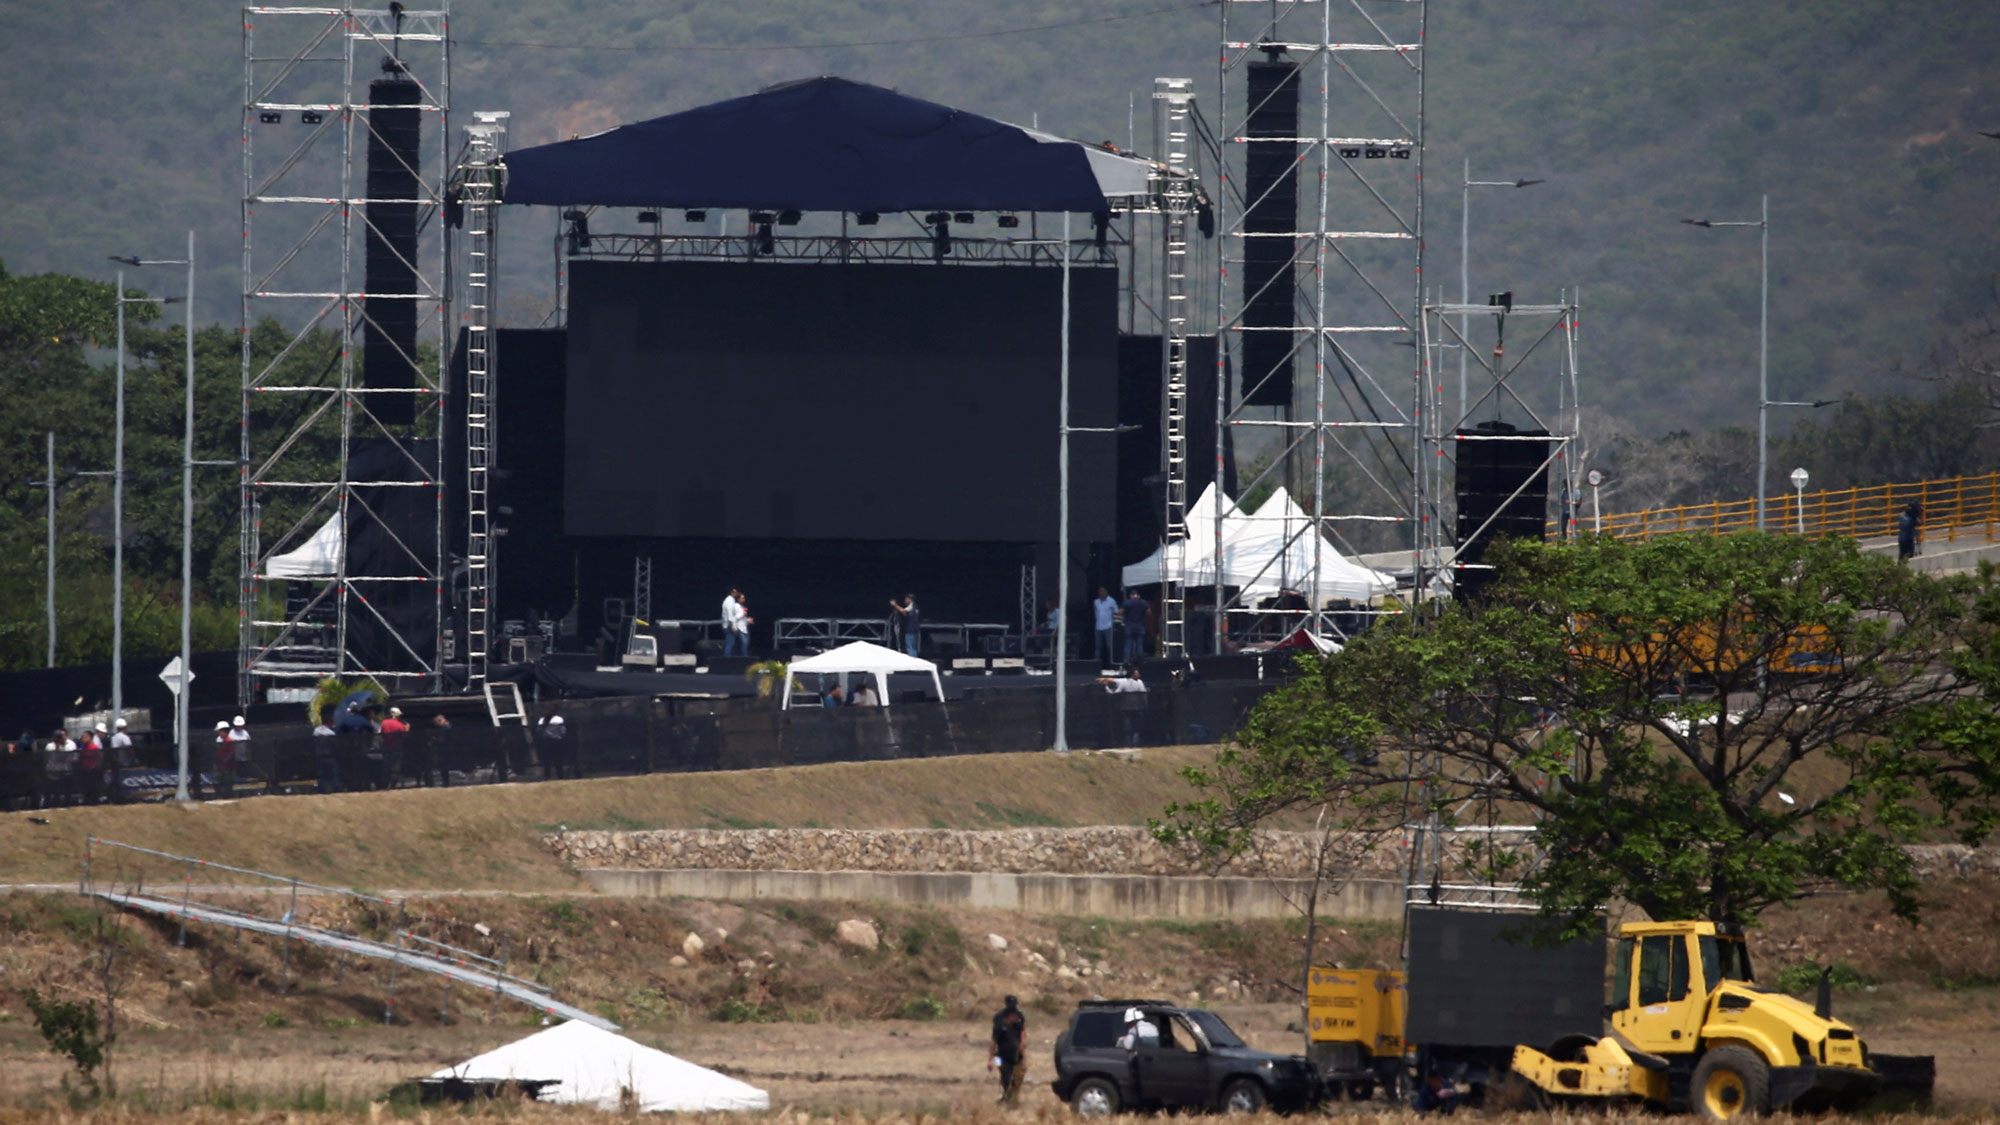 A large outdoor stage is shown being constructed in Cucuta, Colombia.